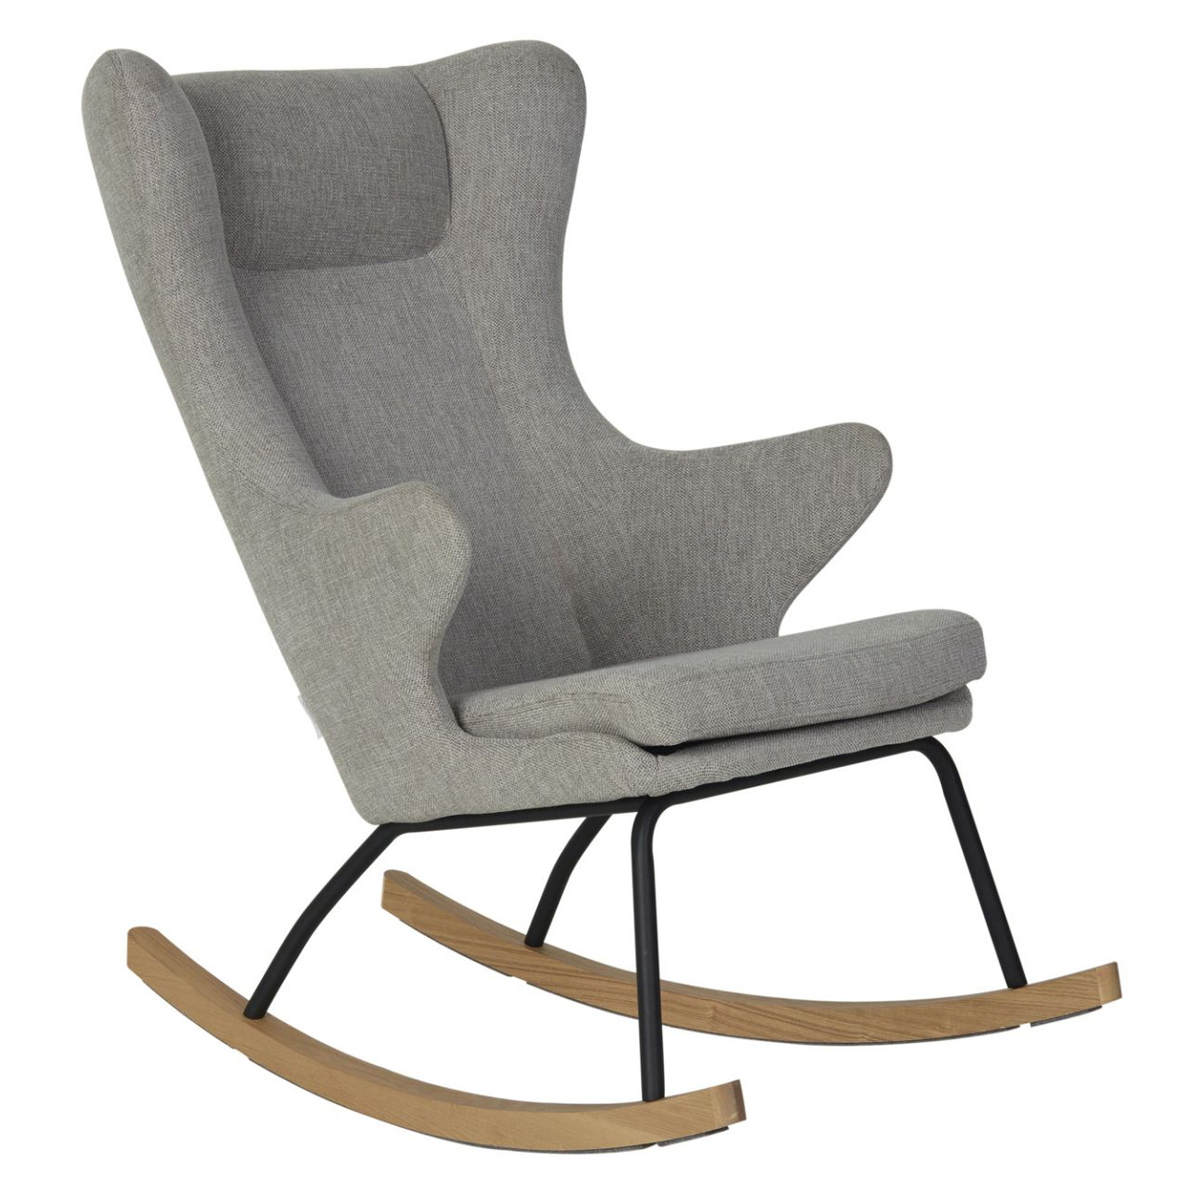 Fauteuil Rocking Adult Chair De Luxe - Sand Grey Rocking Adult Chair De Luxe - Sand Grey